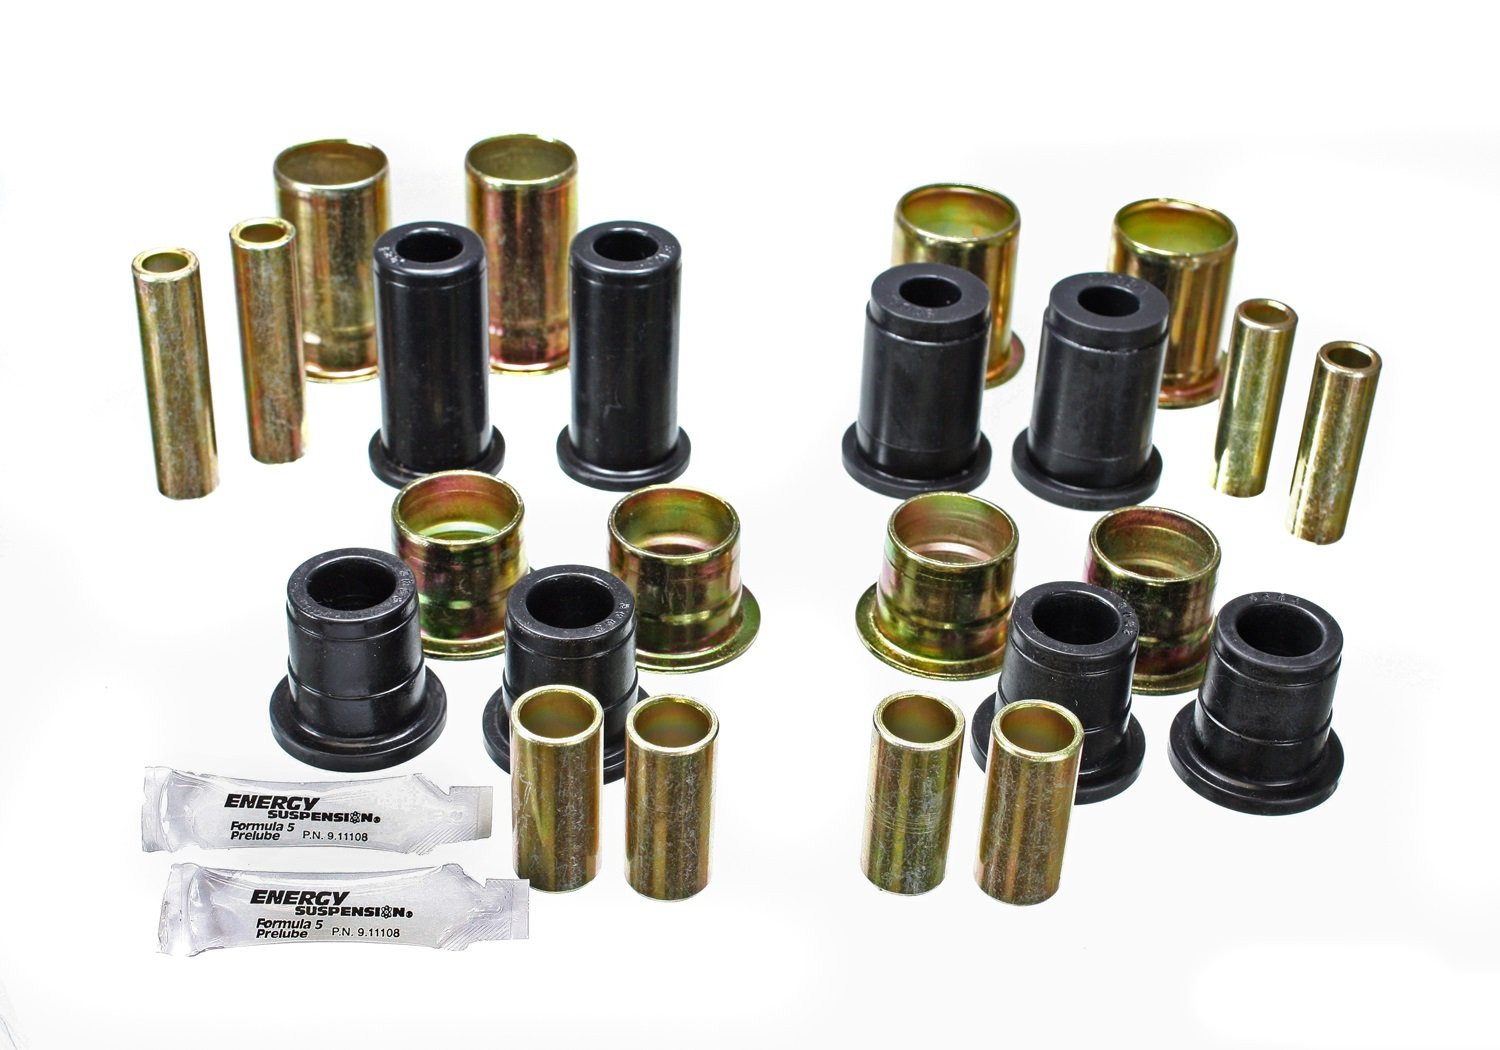 Energy Suspension 3.3156G CONTROL ARM BUSHING SET by Energy Suspension